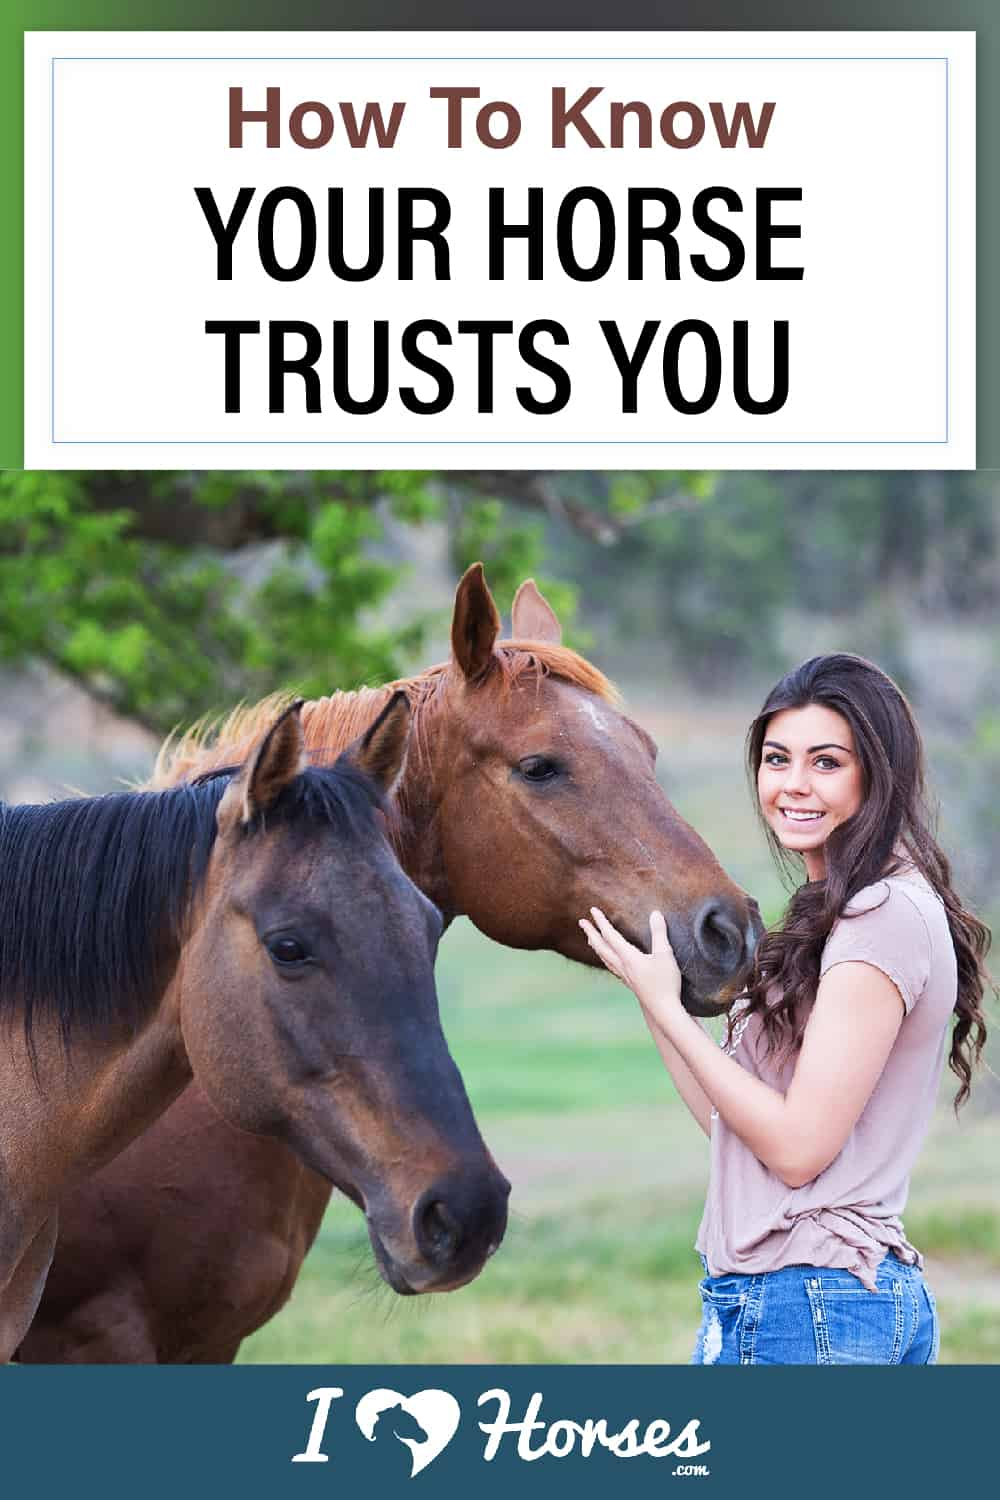 Ways To Know Your Horse Trusts You-02-01